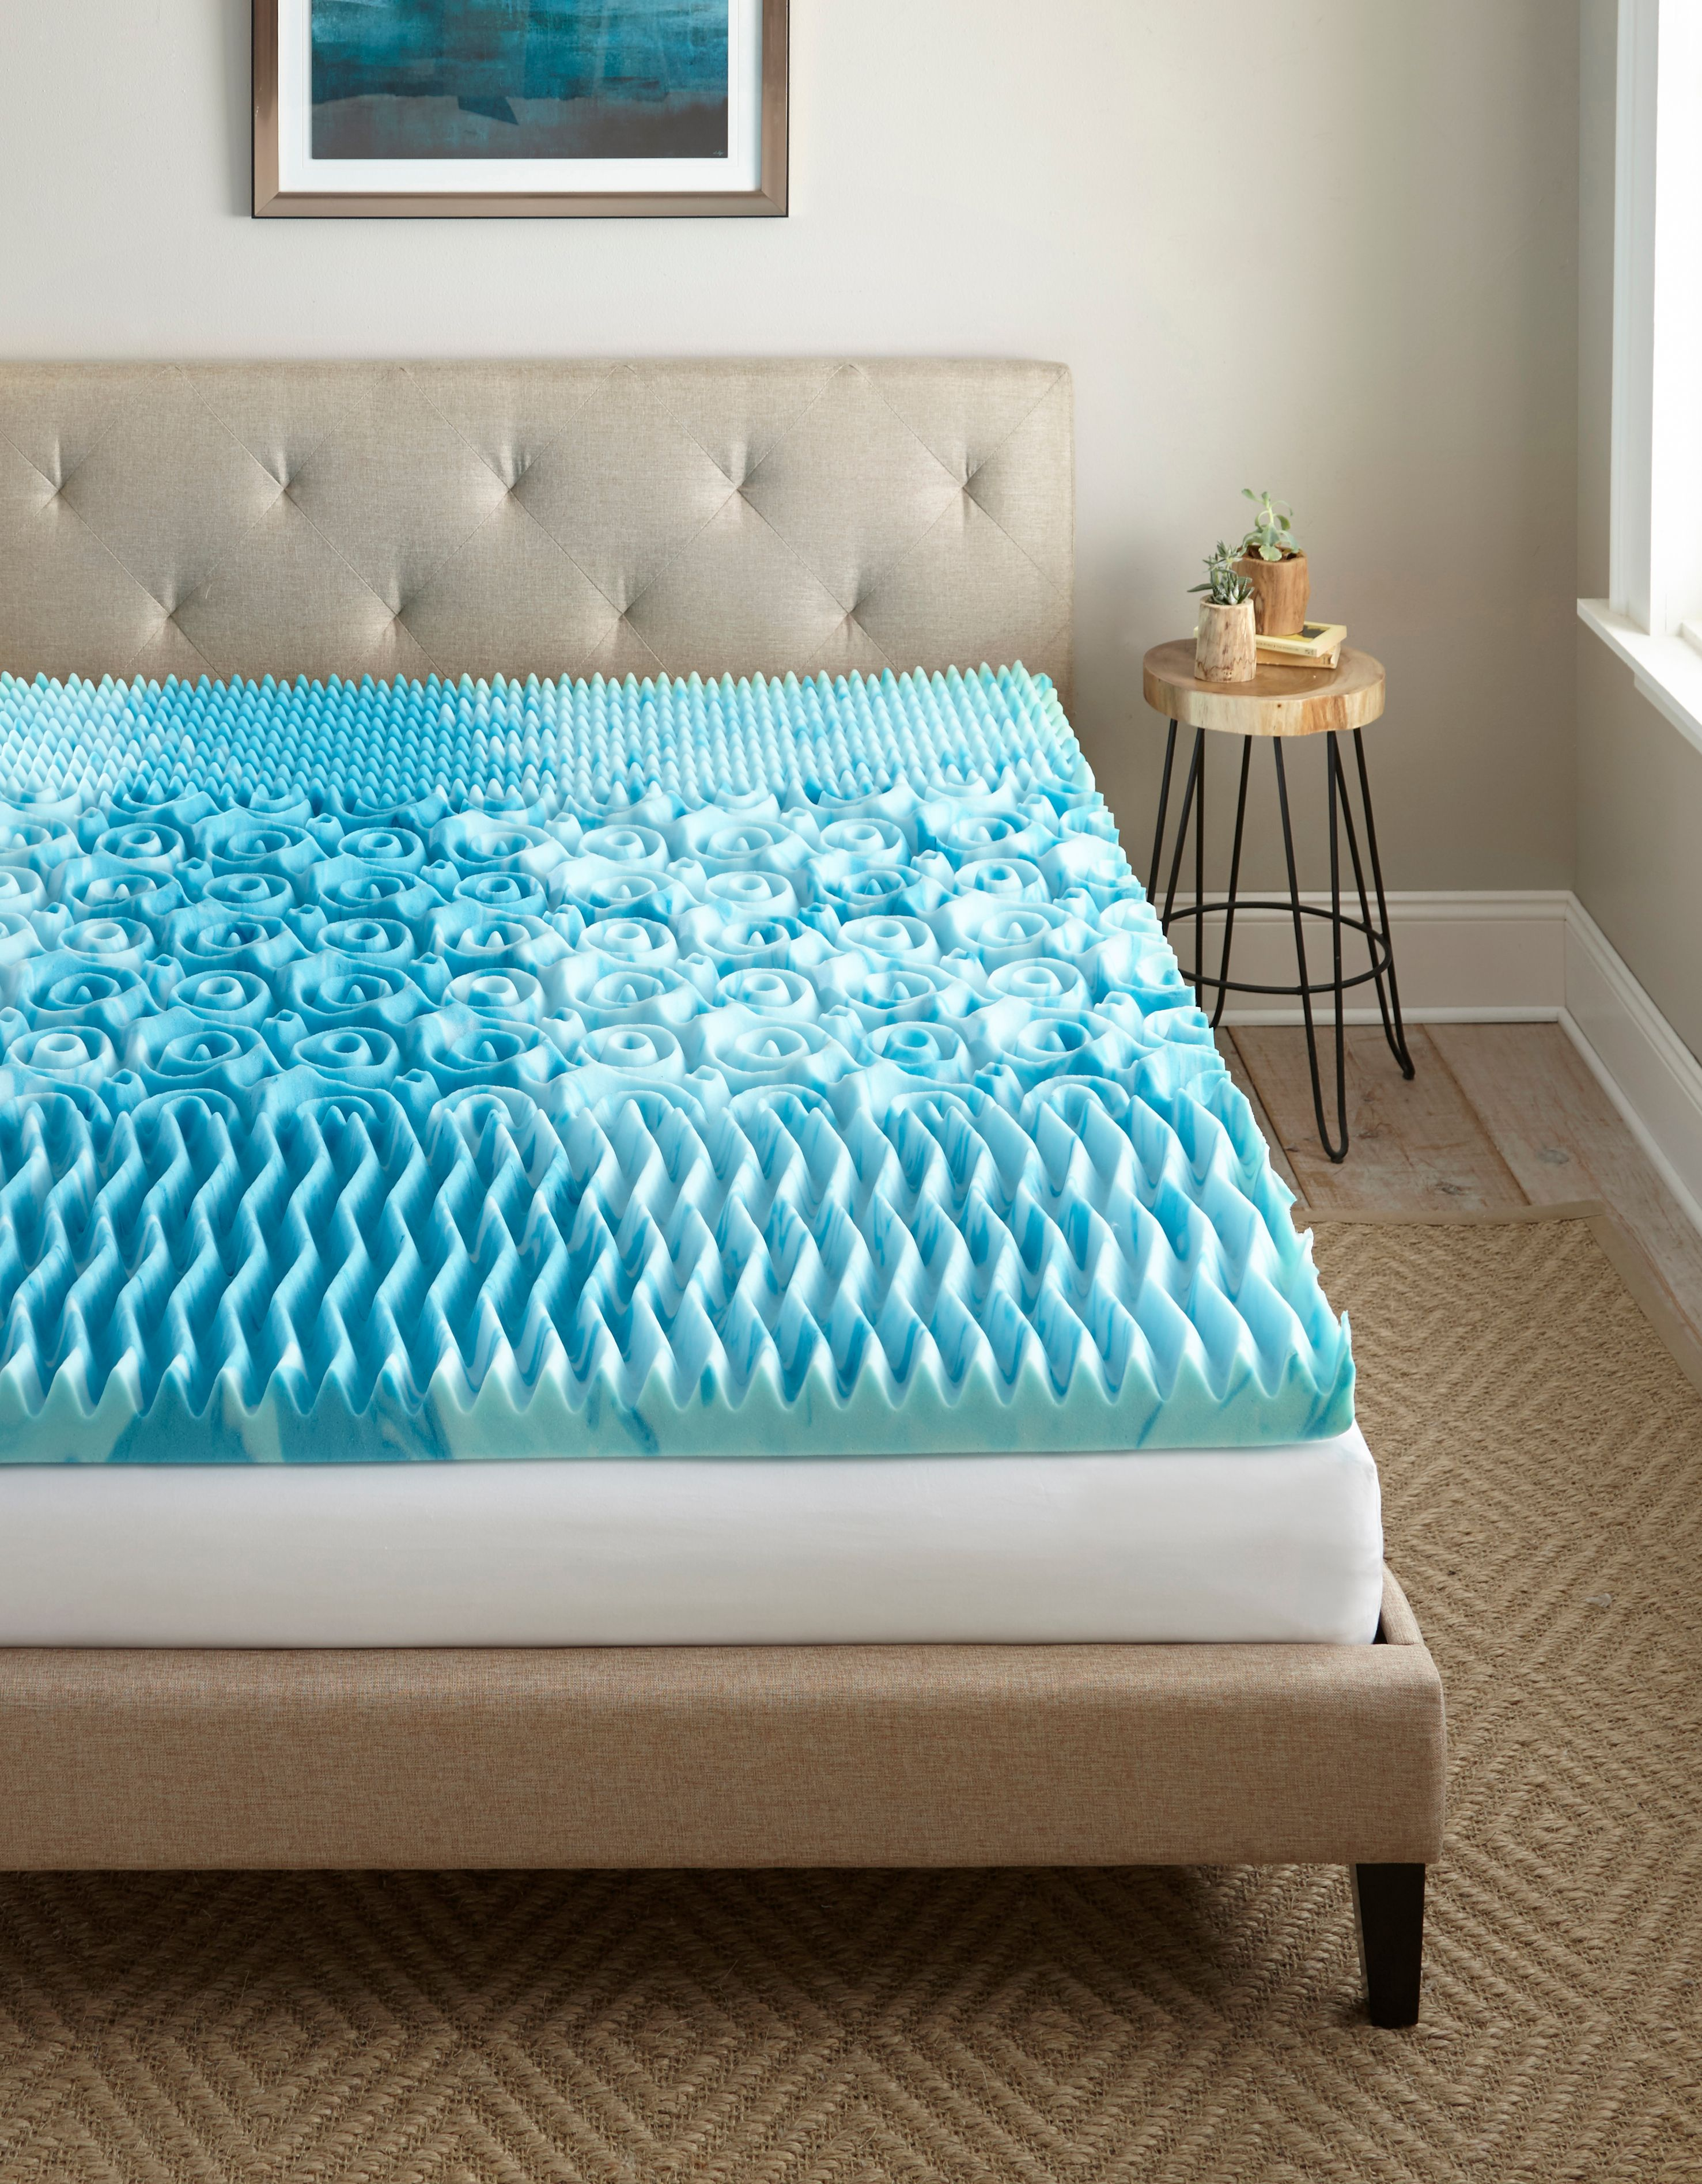 Mattress Topper Twin XL Size Orthopedic Pad Cooling Gel Bed Cover Hypoallergenic